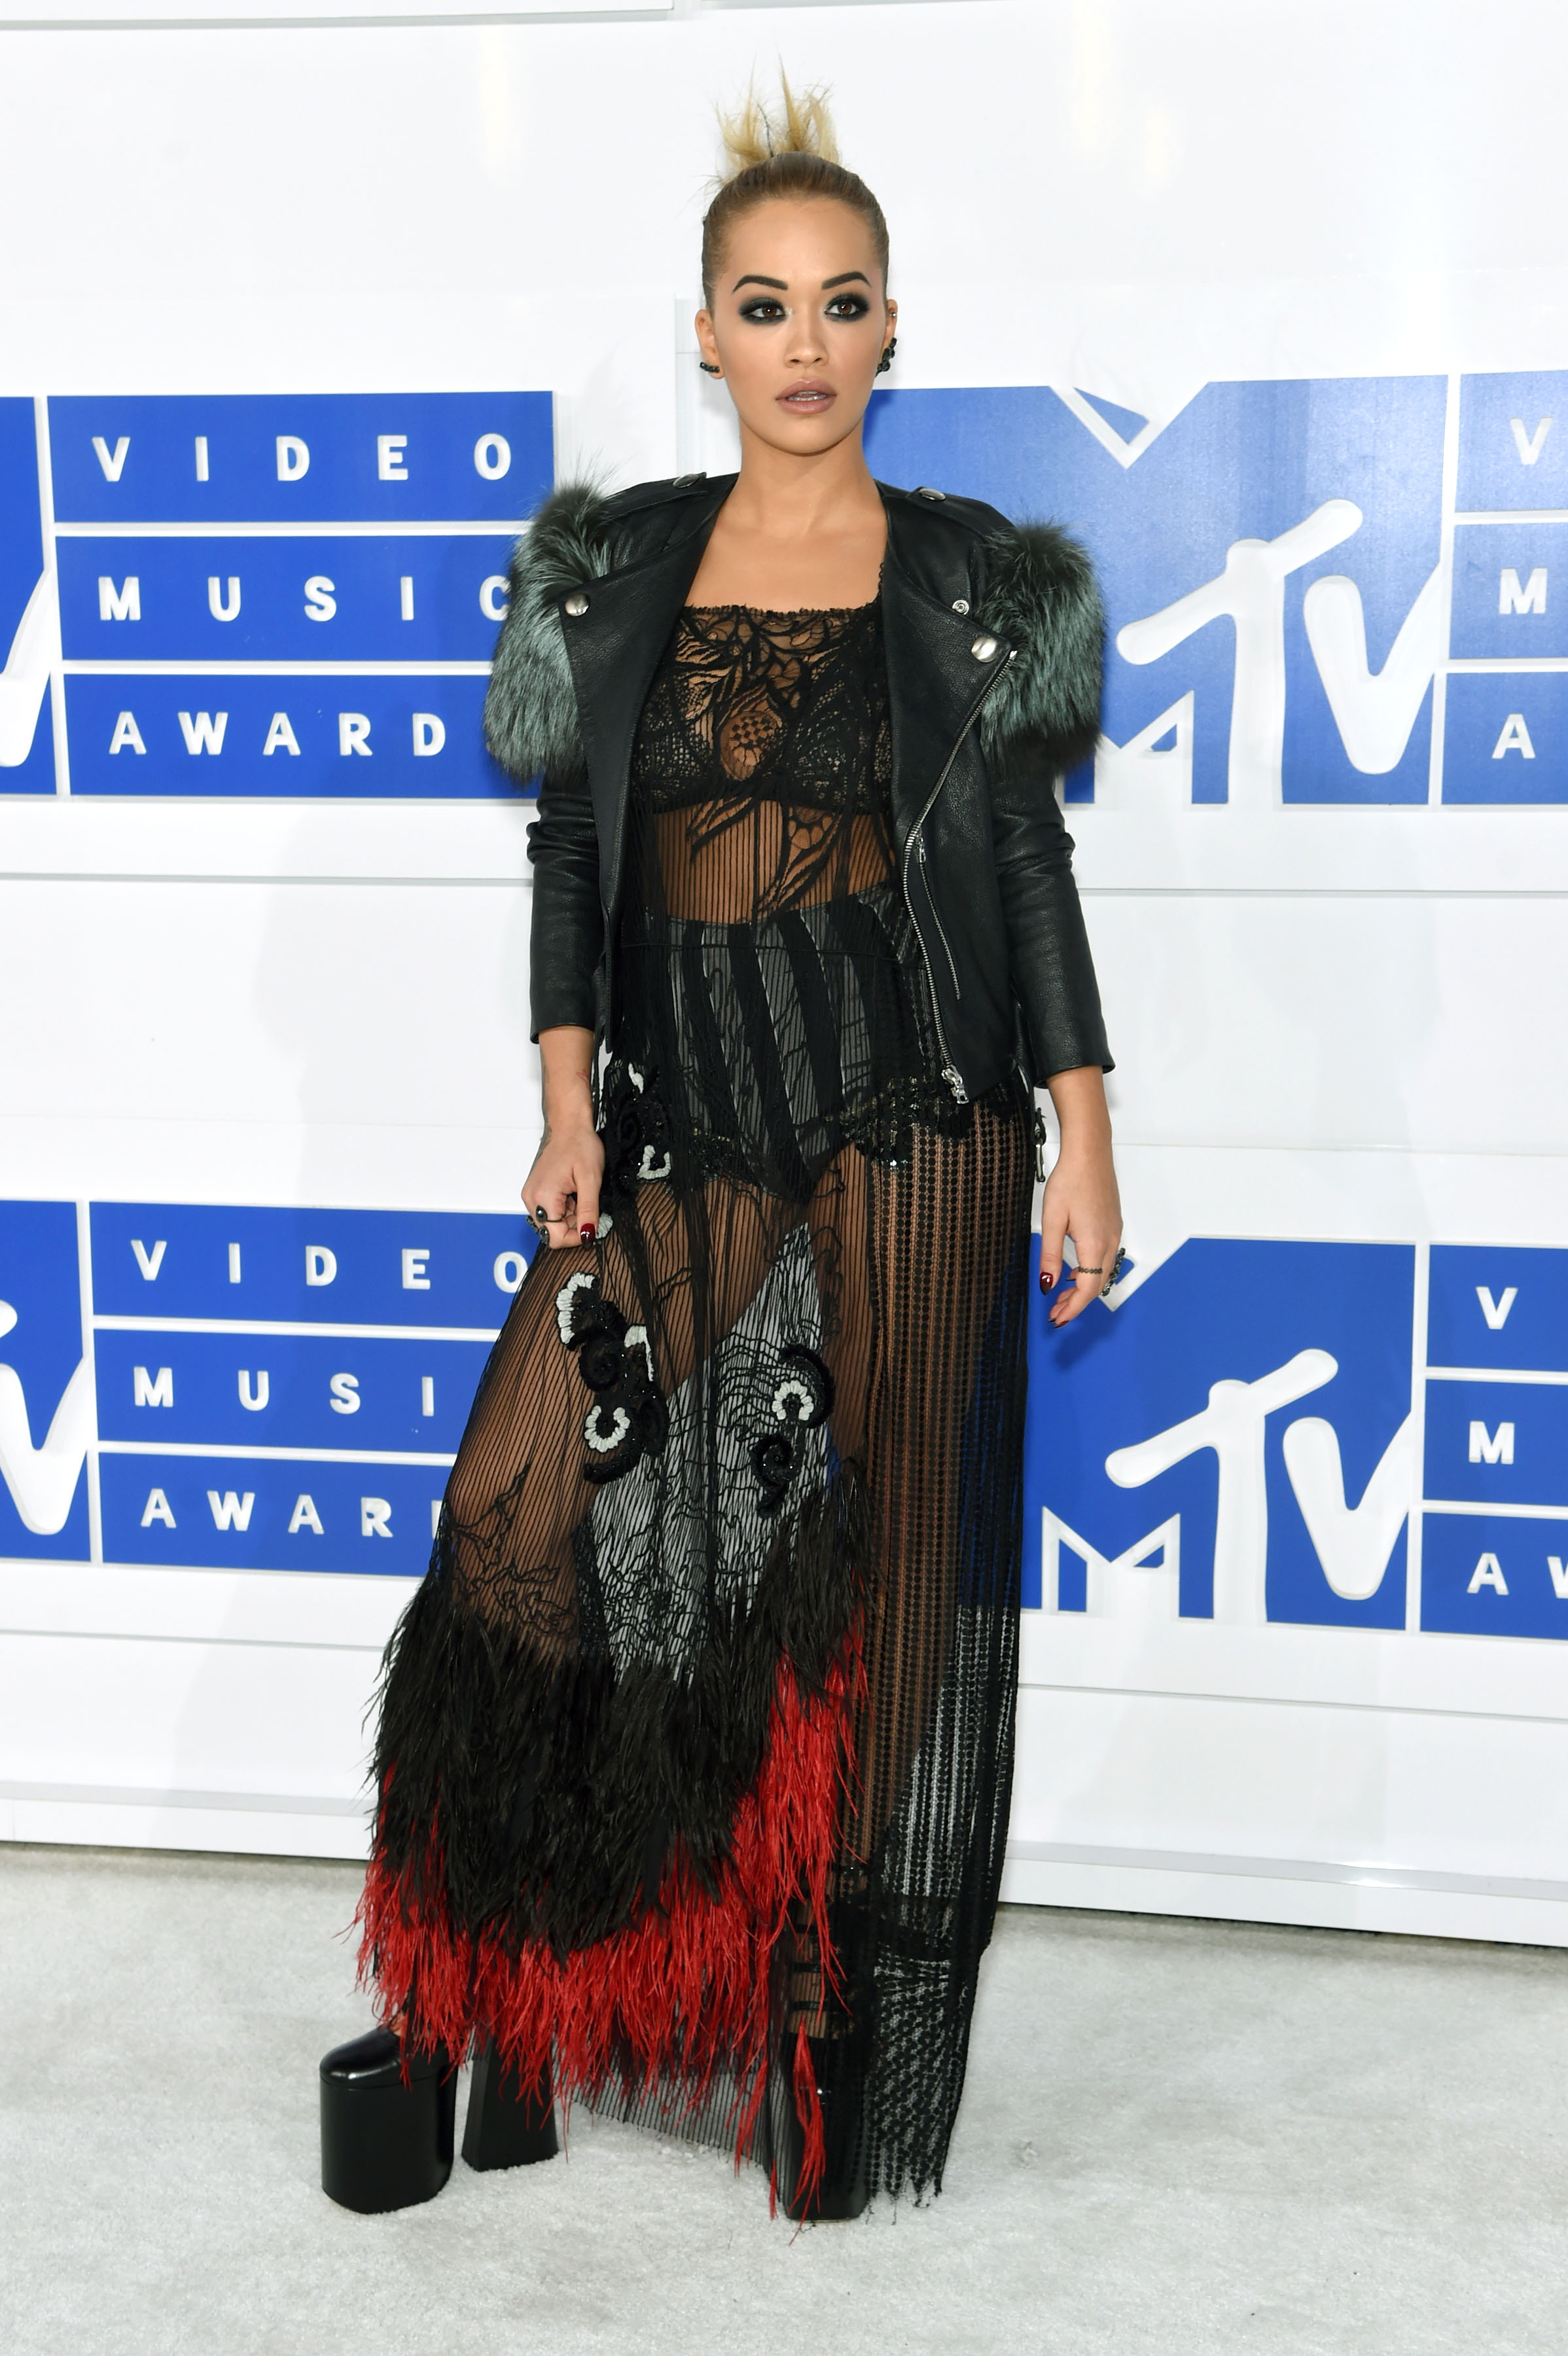 Rita Ora attends the 2016 MTV Video Music Awards at Madison Square Garden on Aug. 28, 2016 in New York City.